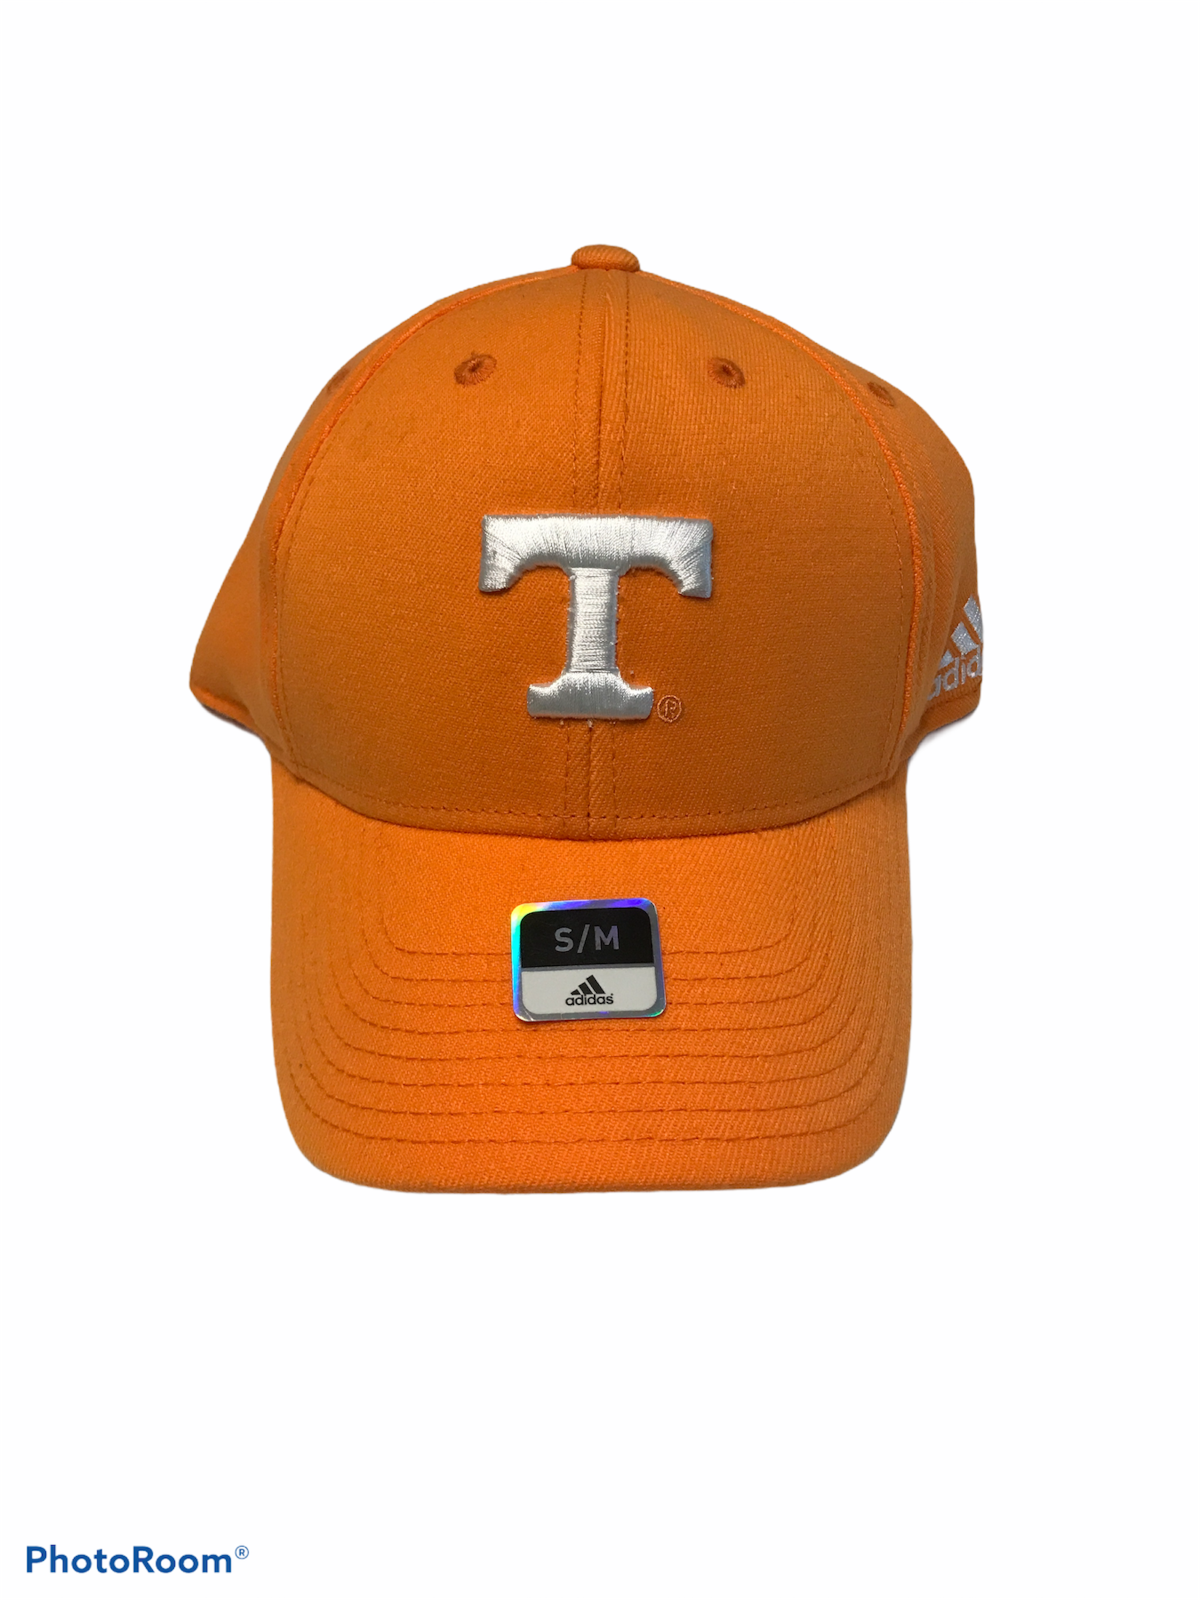 Primary image for Tennessee Volunteers Vols Cap Hat Adidas Fit Max 70 Fitted Stretch Size S/M NWD